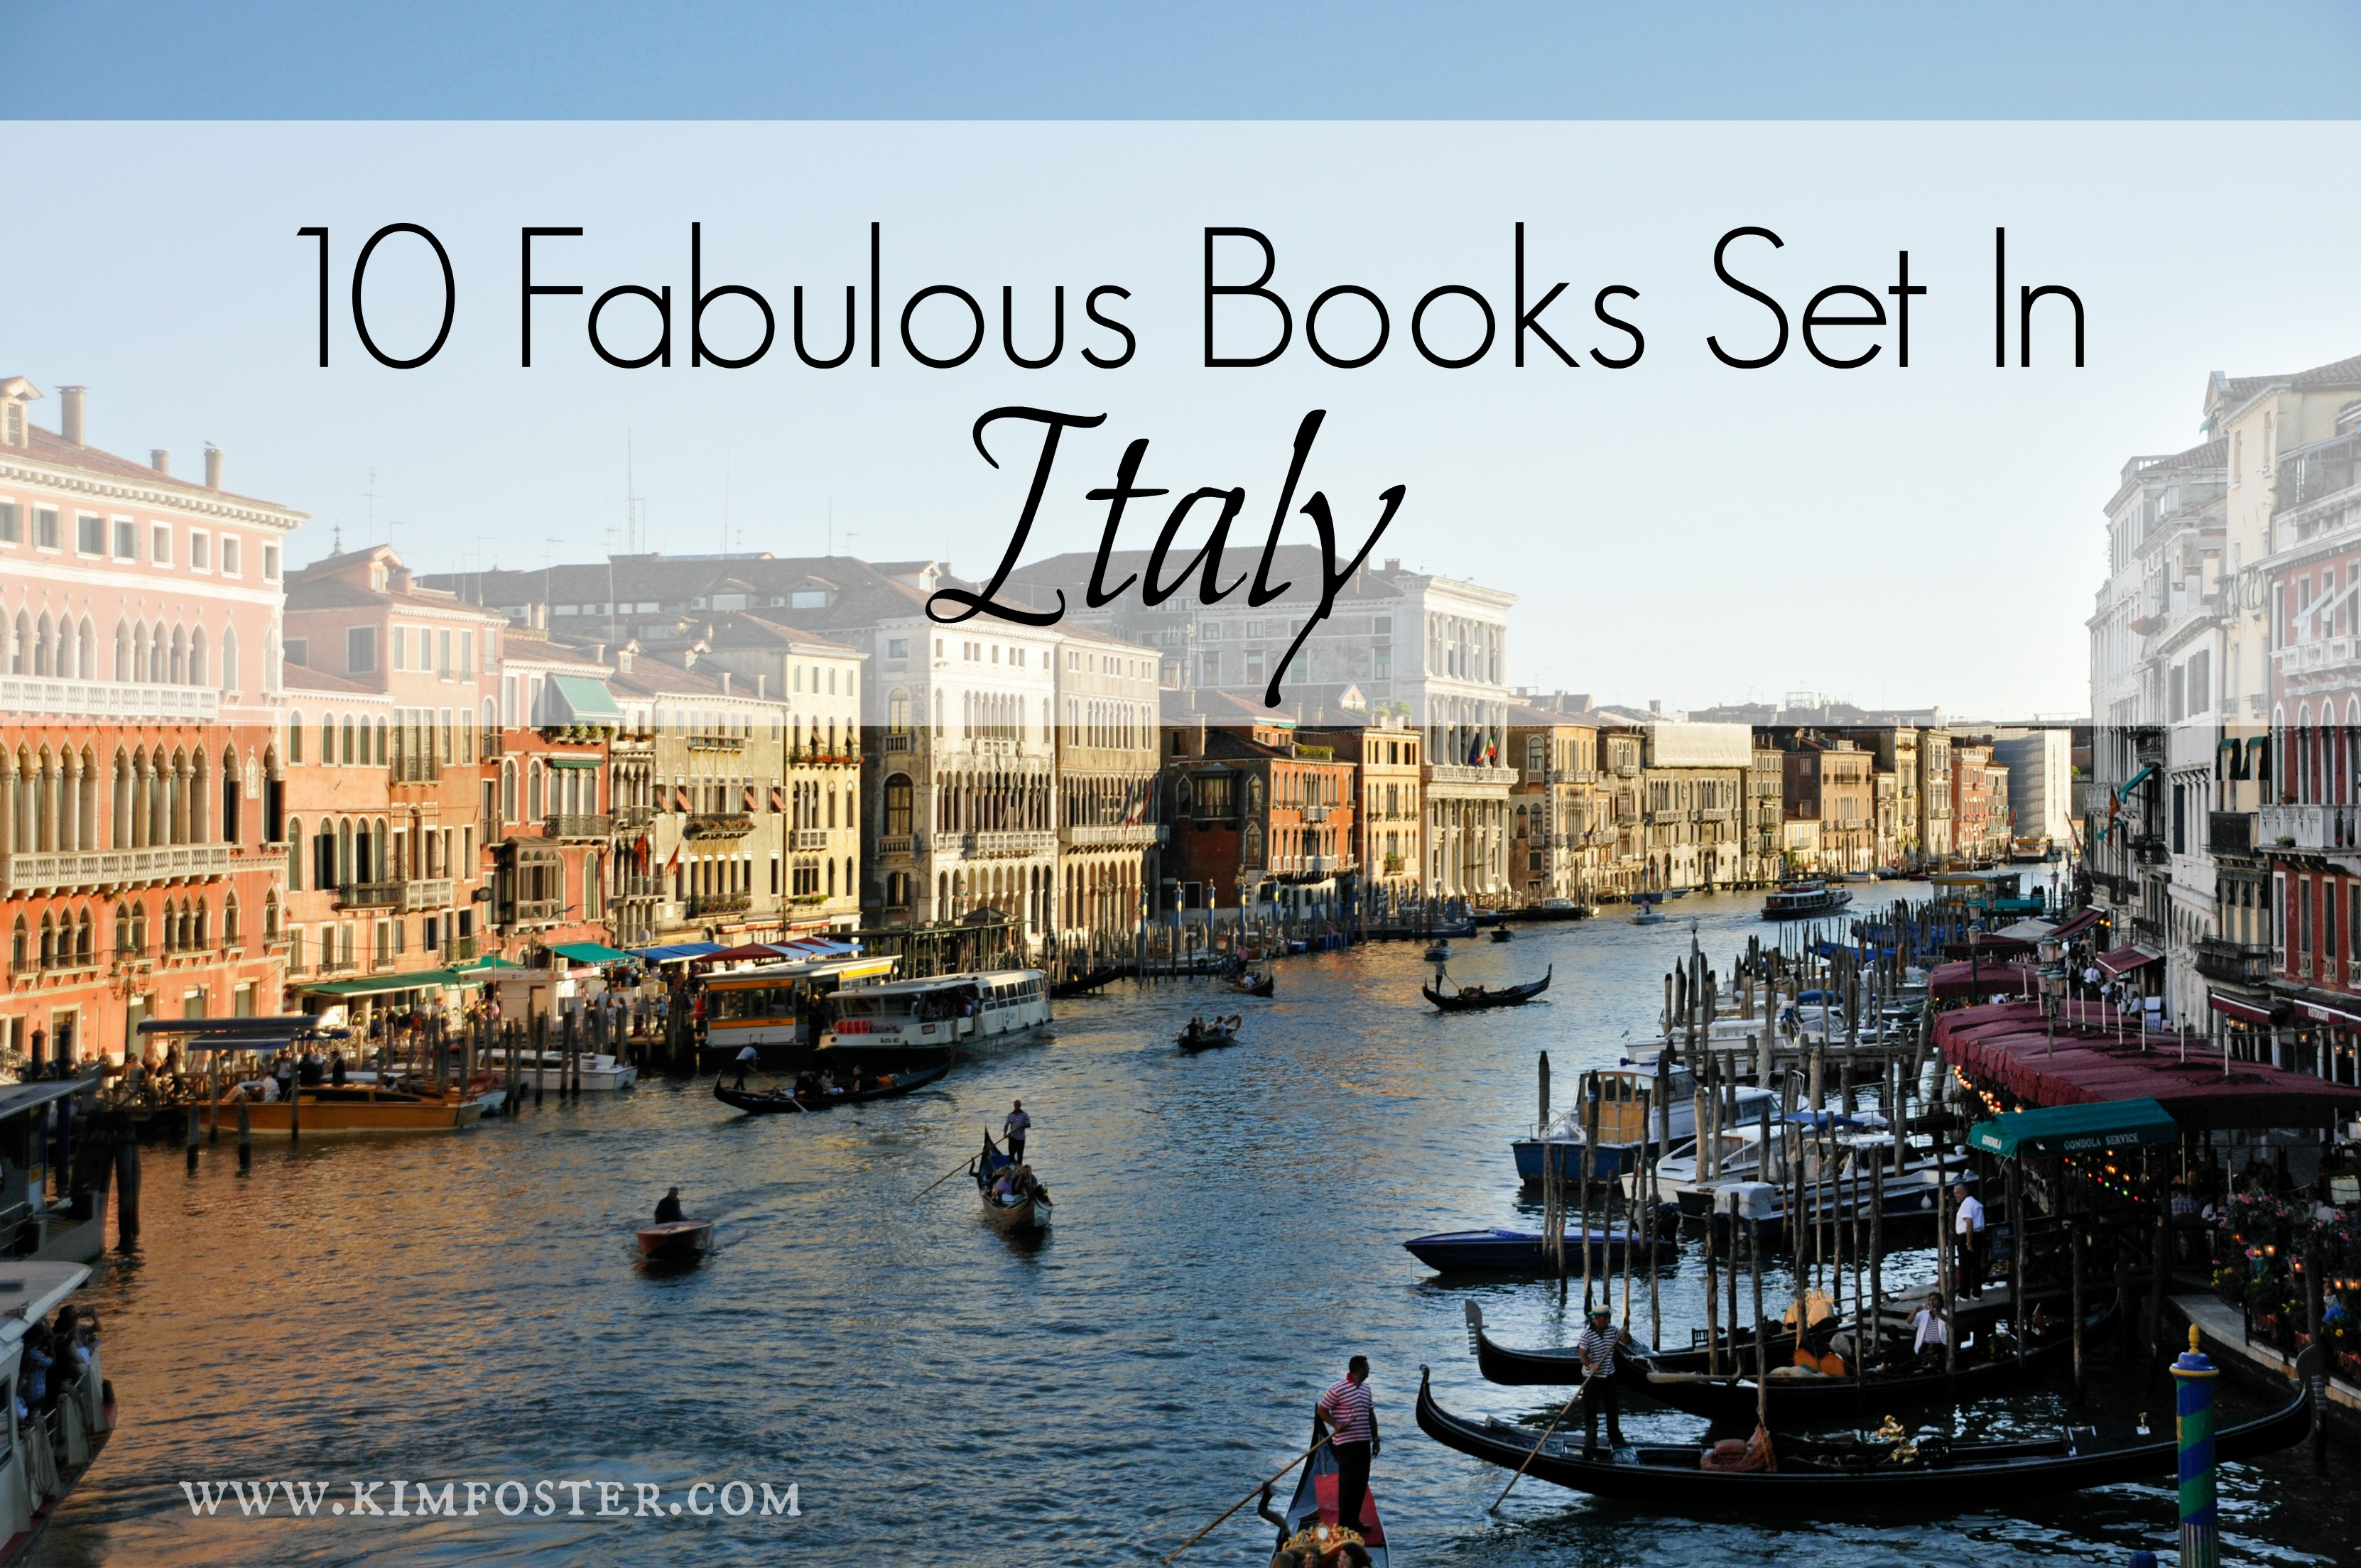 10-Fabulous-Books-Set-In-Italy